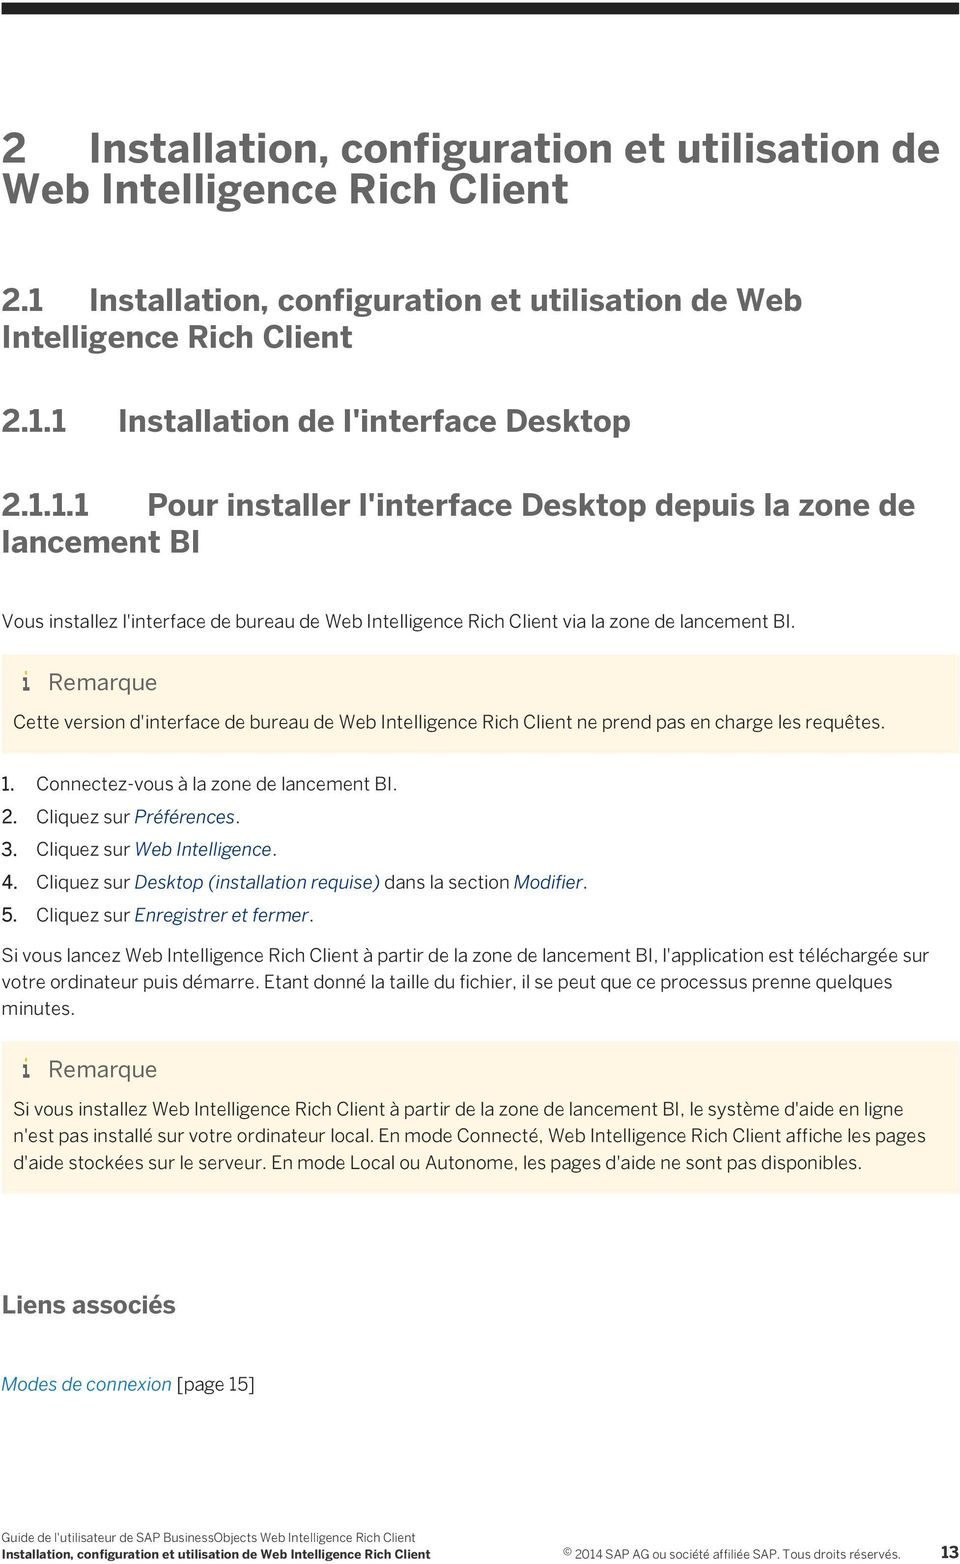 Cette version d'interface de bureau de Web Intelligence Rich Client ne prend pas en charge les requêtes. 1. Connectez-vous à la zone de lancement BI. 2. Cliquez sur Préférences. 3.